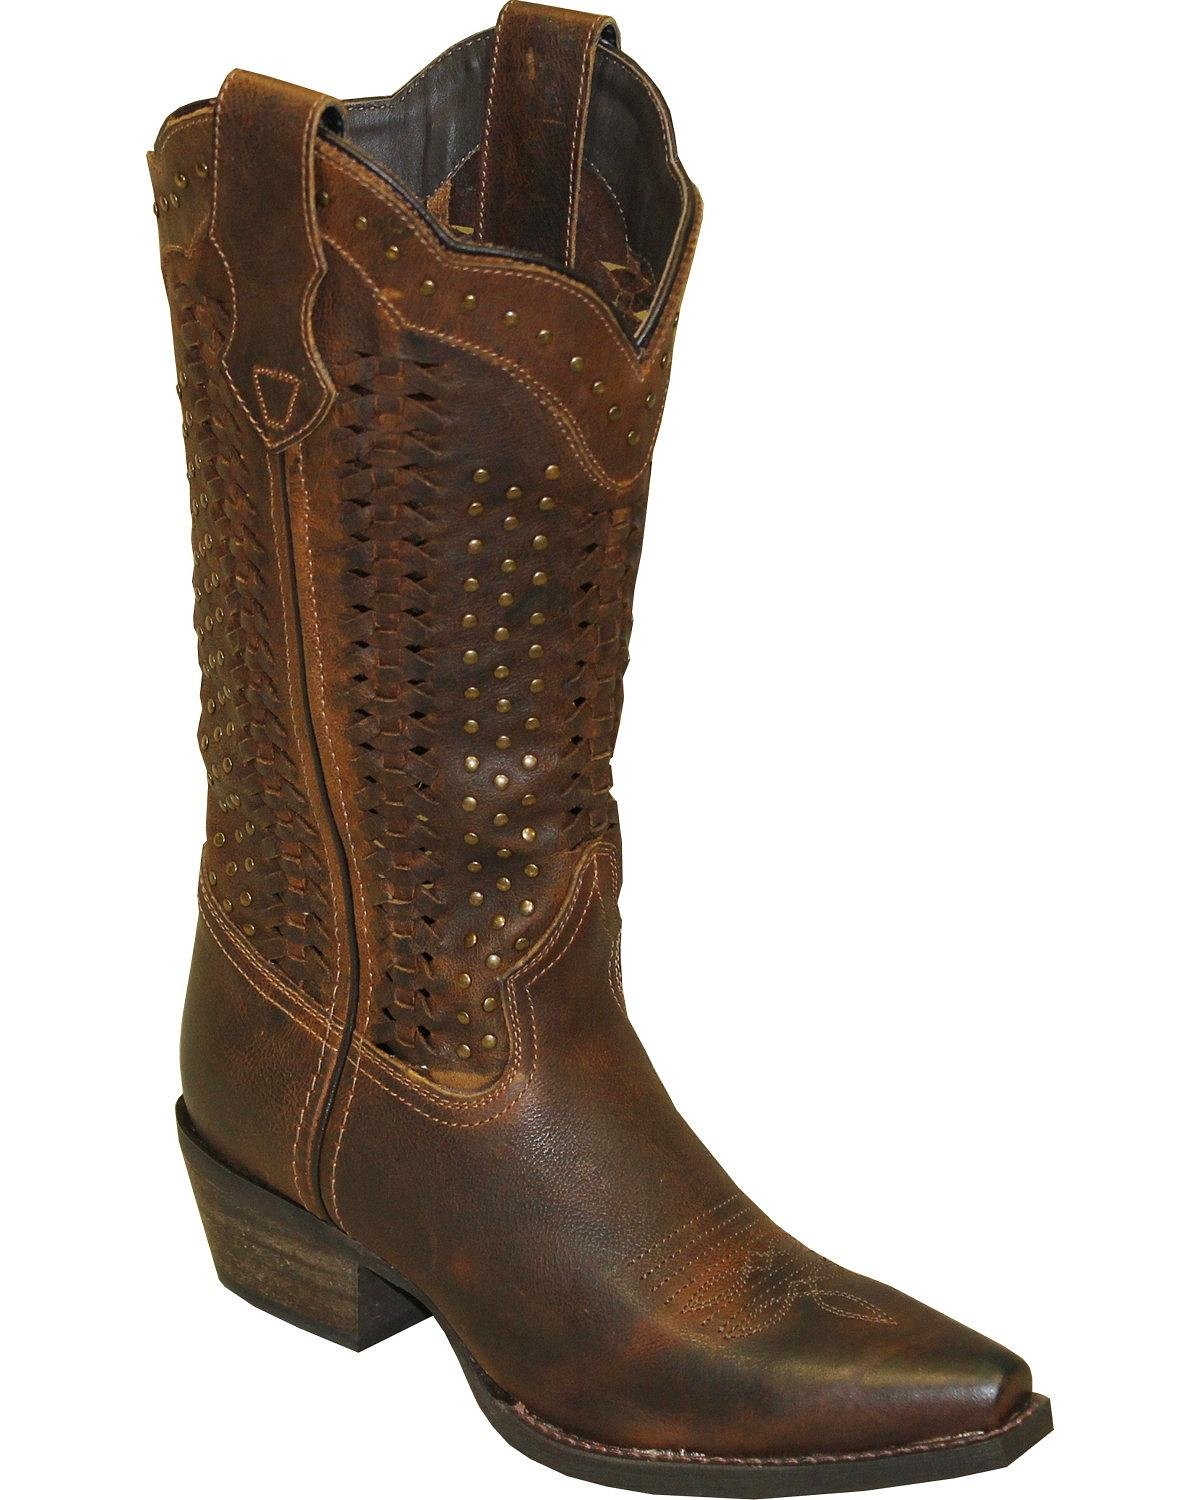 Abilene Women's Rawhide by Scalloped and Weaving Western Boot Snip Toe - 5143 B077FN15CQ One Size|Brown